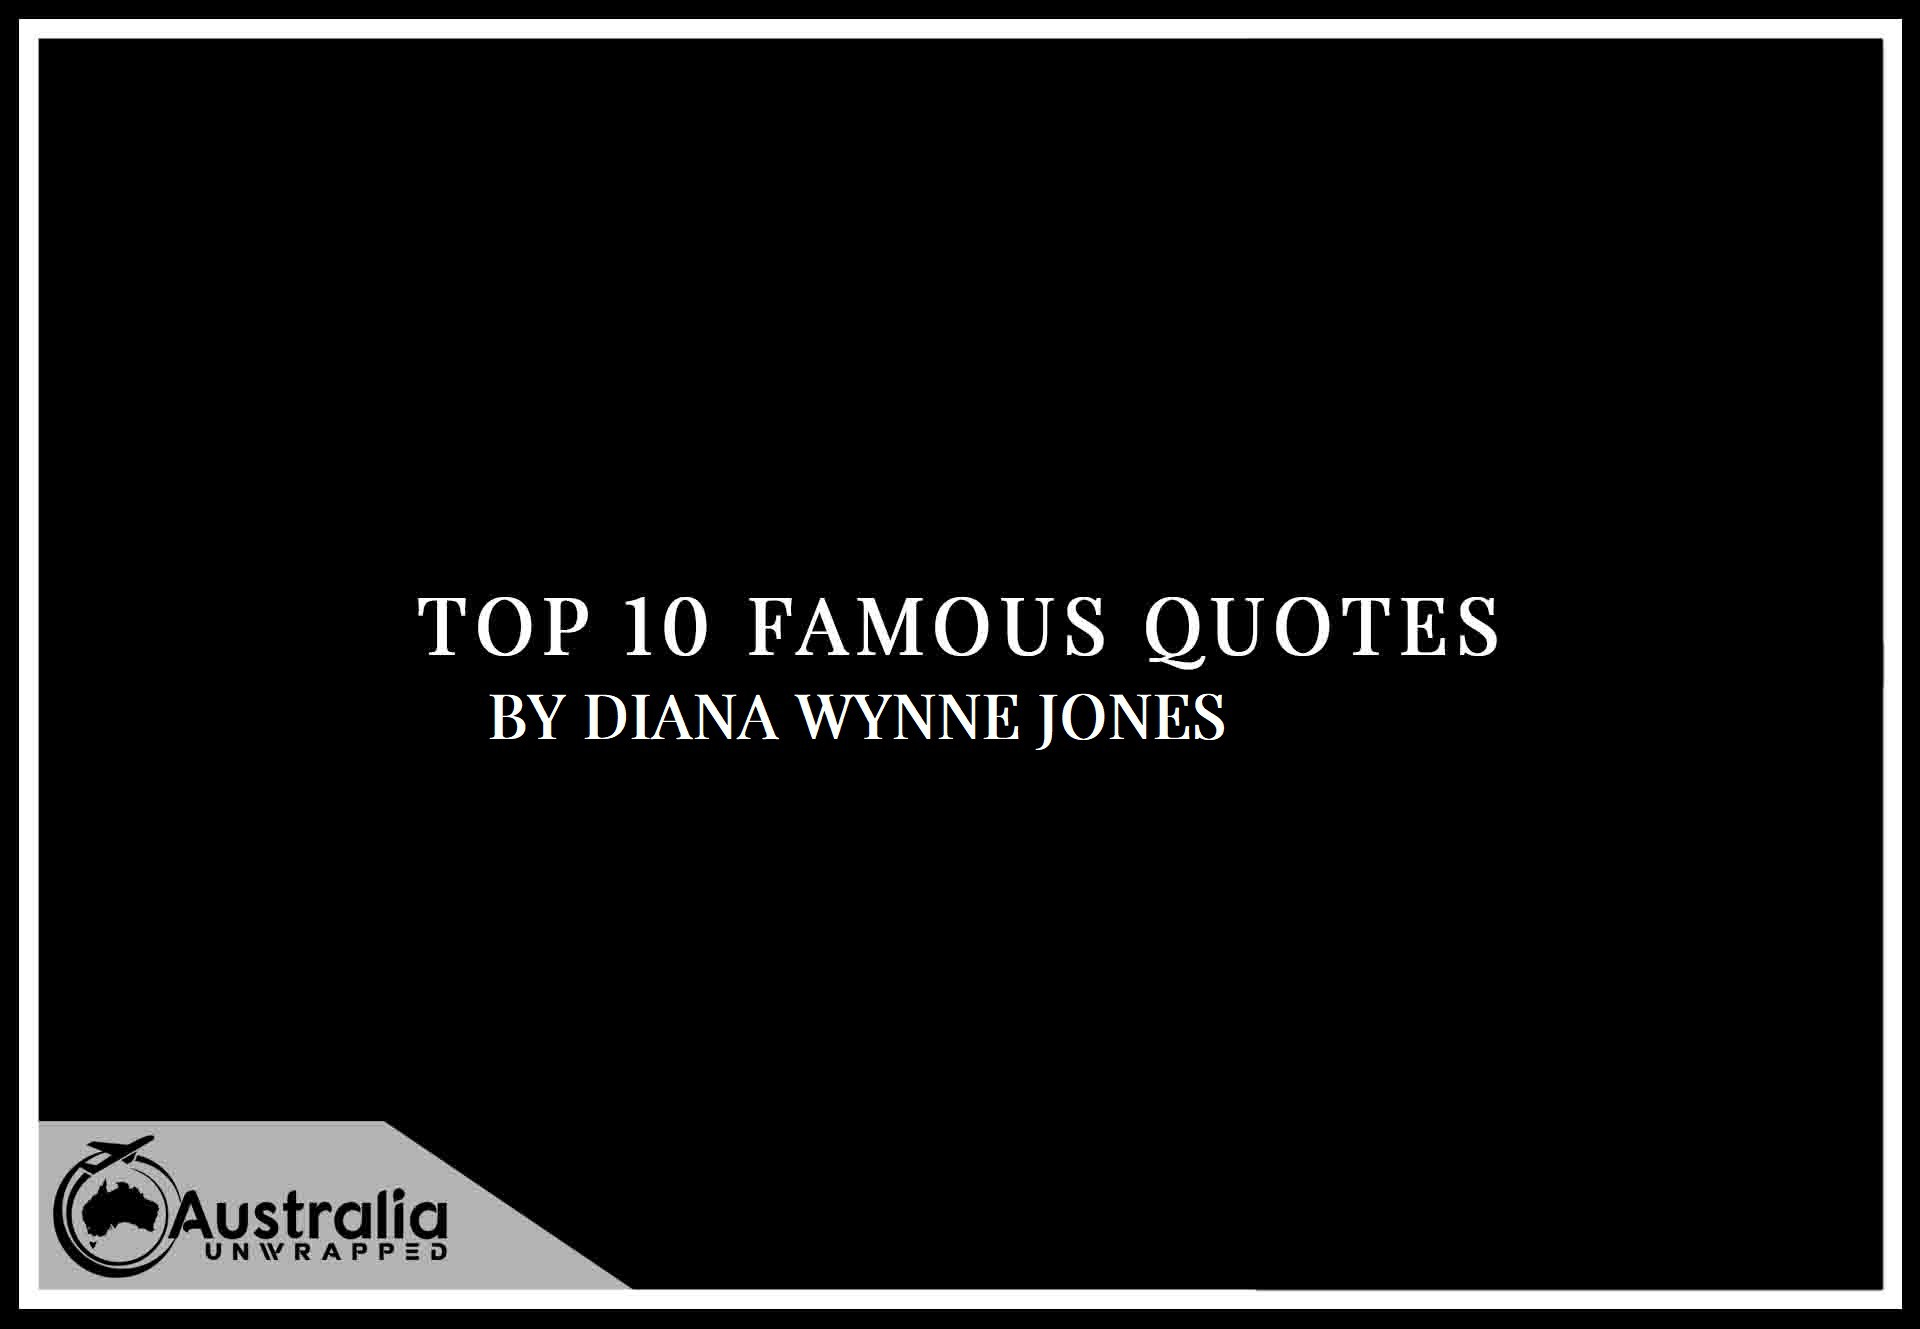 Top 10 Famous Quotes by Author Diana Wynne Jones